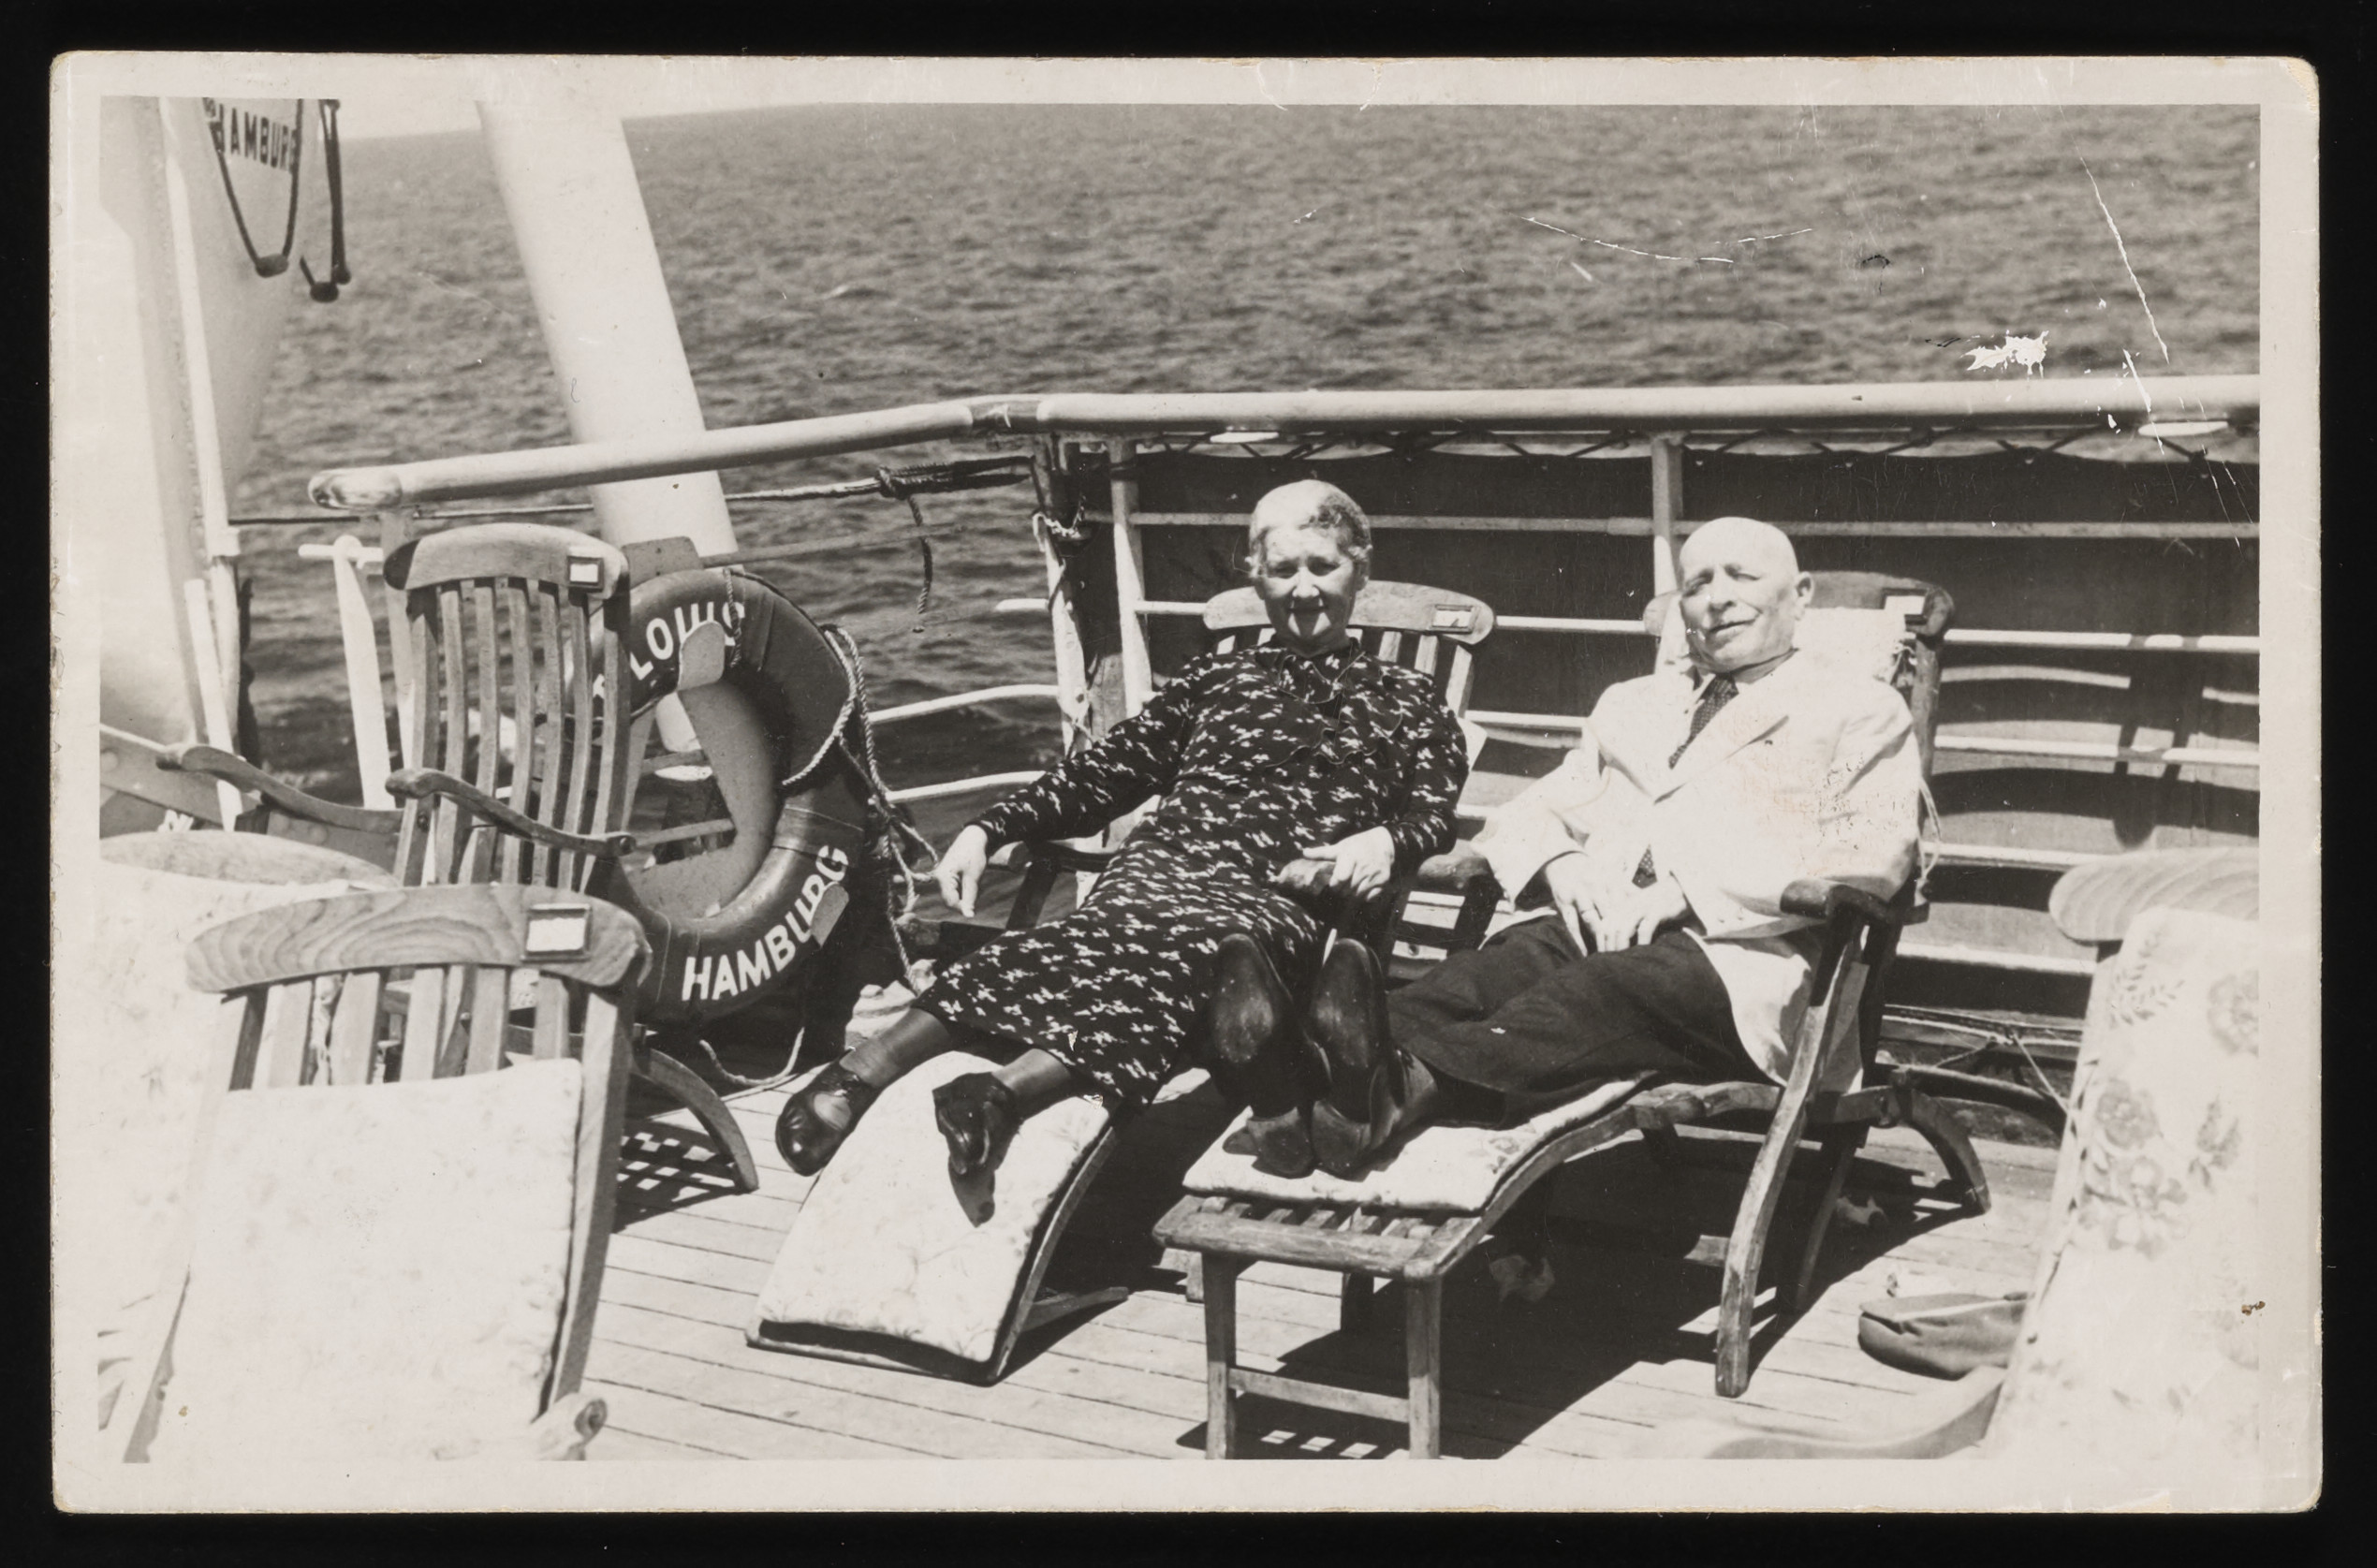 Joseph and Fanny Stein relax in deck chairs on board the MS St. Louis.